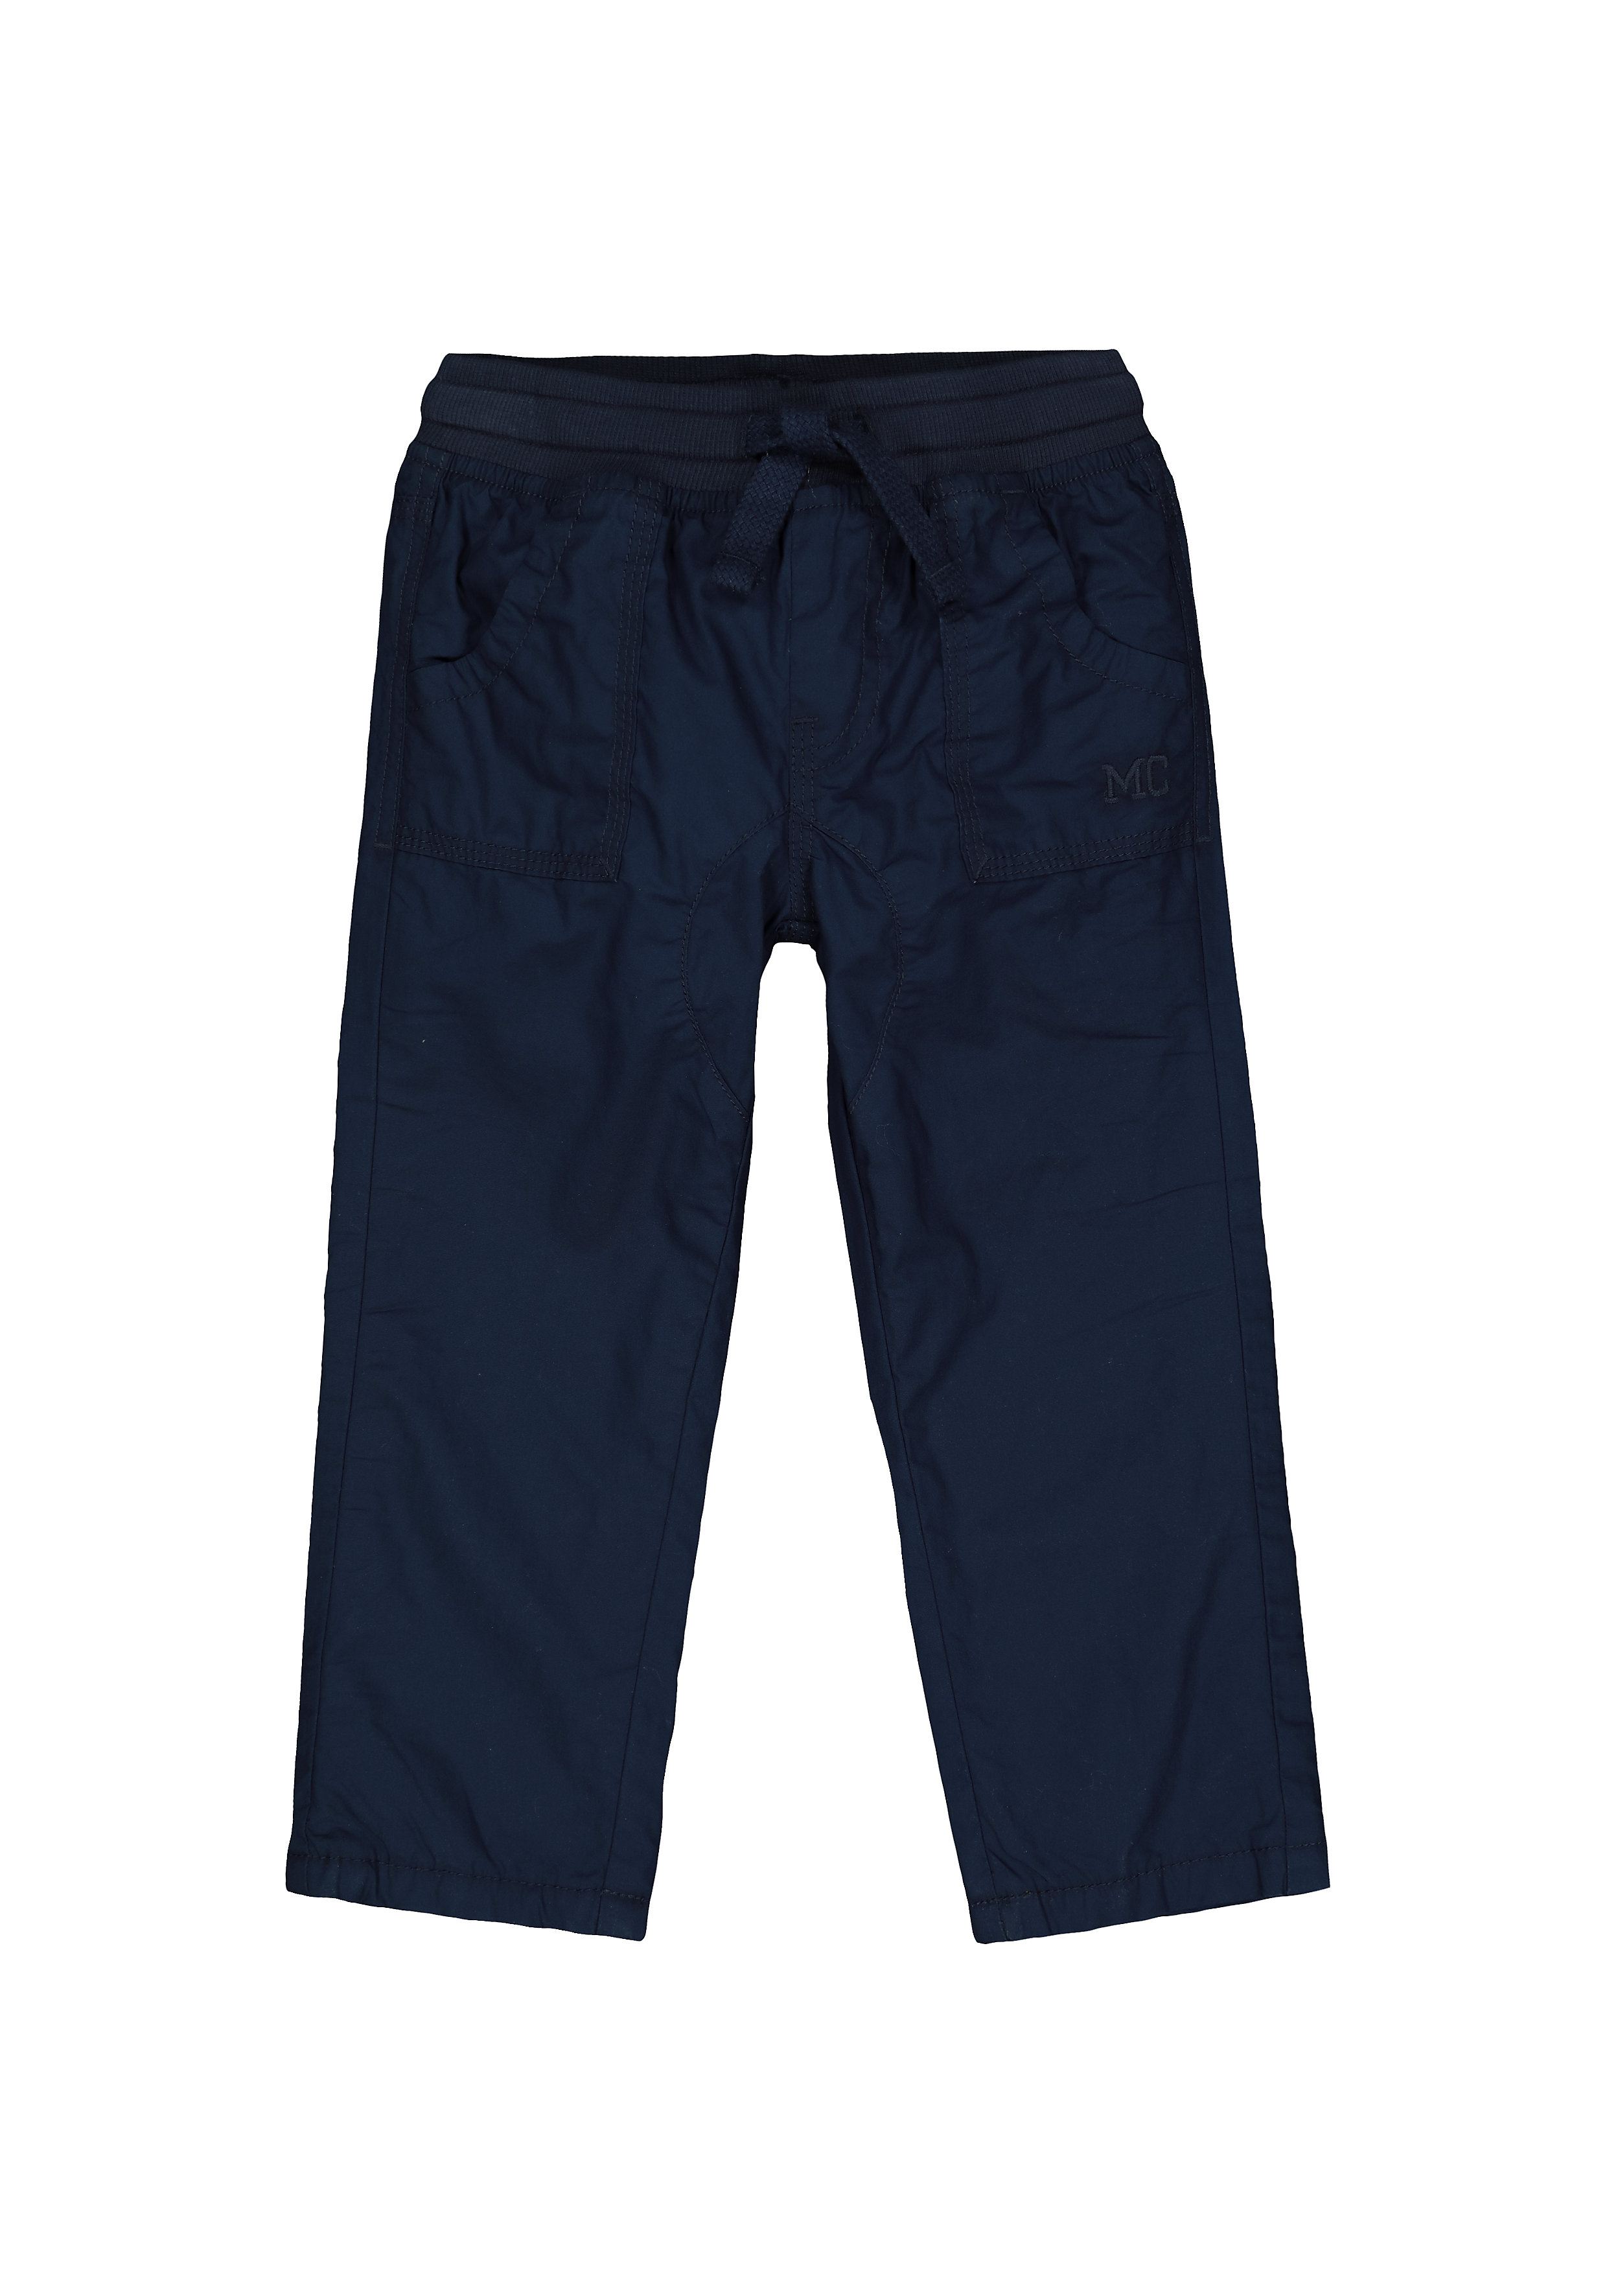 Mothercare | Boys Trousers Fleece Lined - Navy